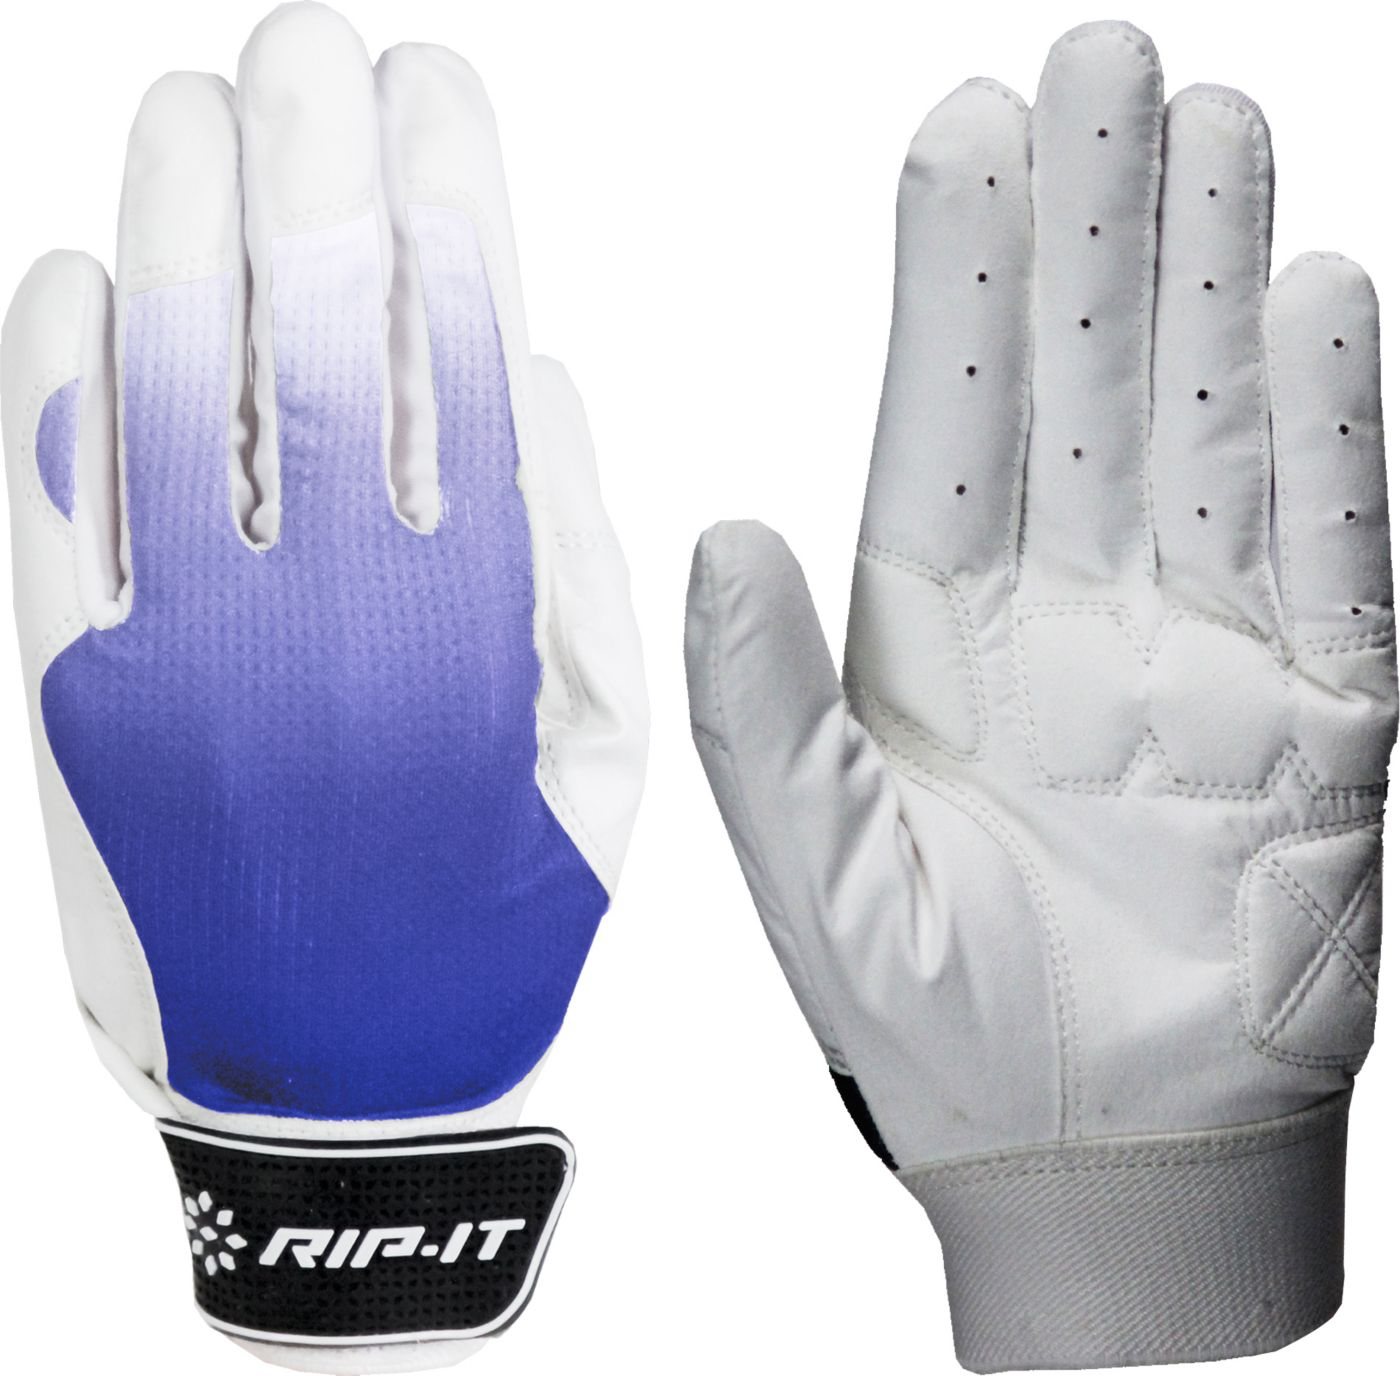 RIP-IT Blister Control Fastpitch Batting Gloves